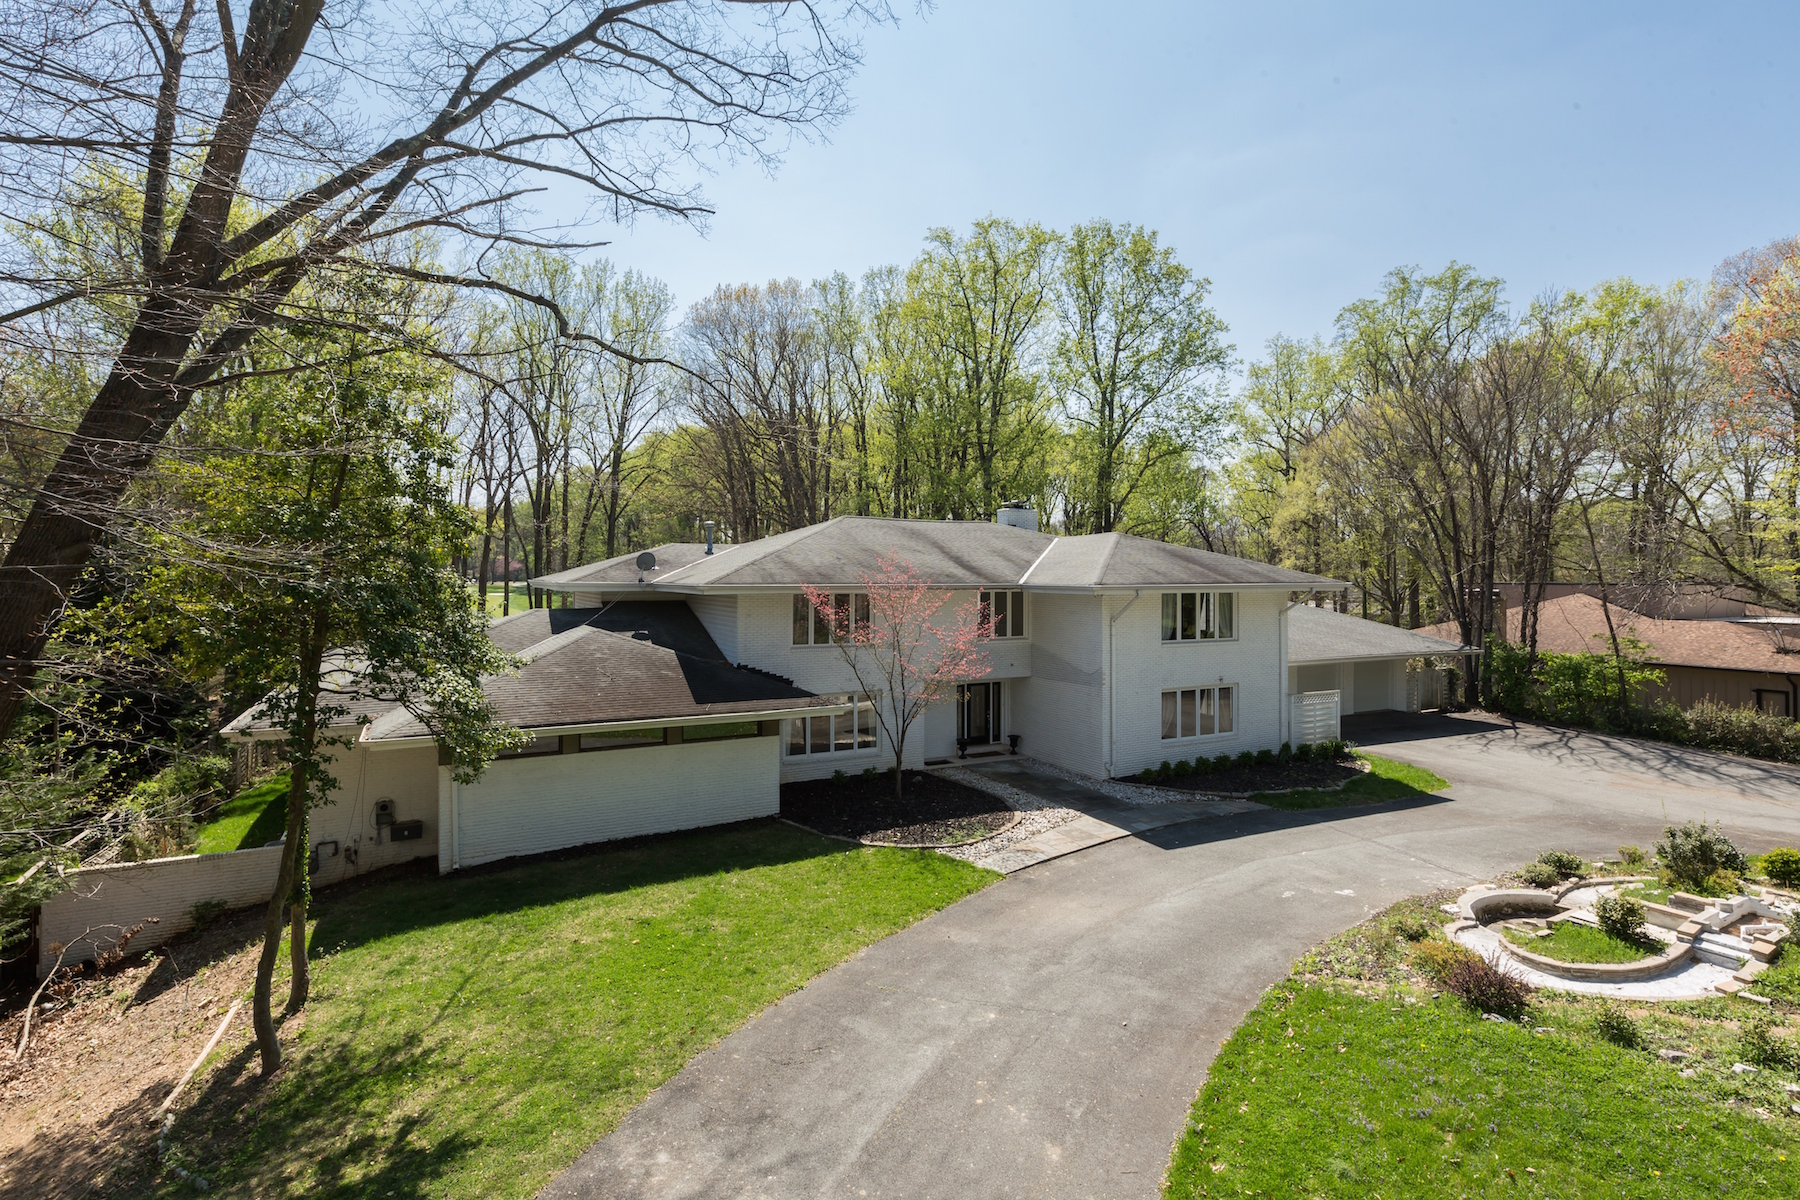 Additional photo for property listing at 7318 Arrowood Rd. Bethesda, MD  Bethesda, Maryland 20817 Stati Uniti